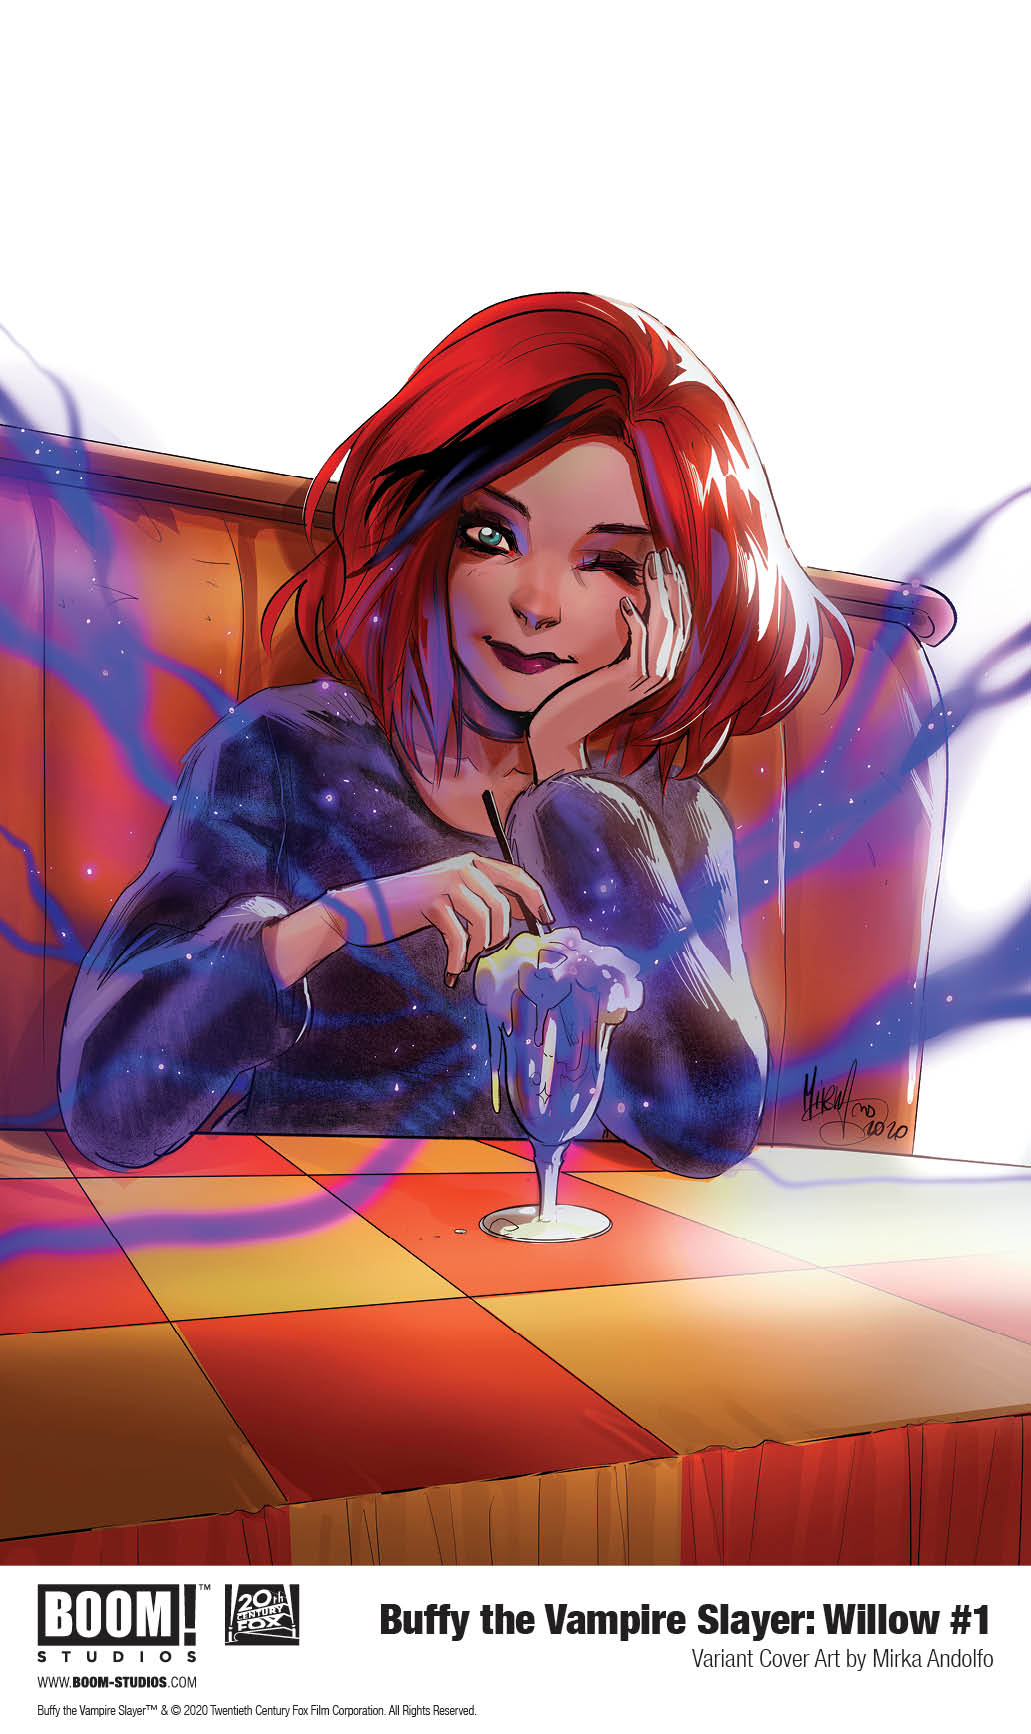 fc45c20b-412e-4c8a-9c4a-dabe2ffcaadc Mirka Andolfo signs twelve issue cover deal with BOOM! Studios